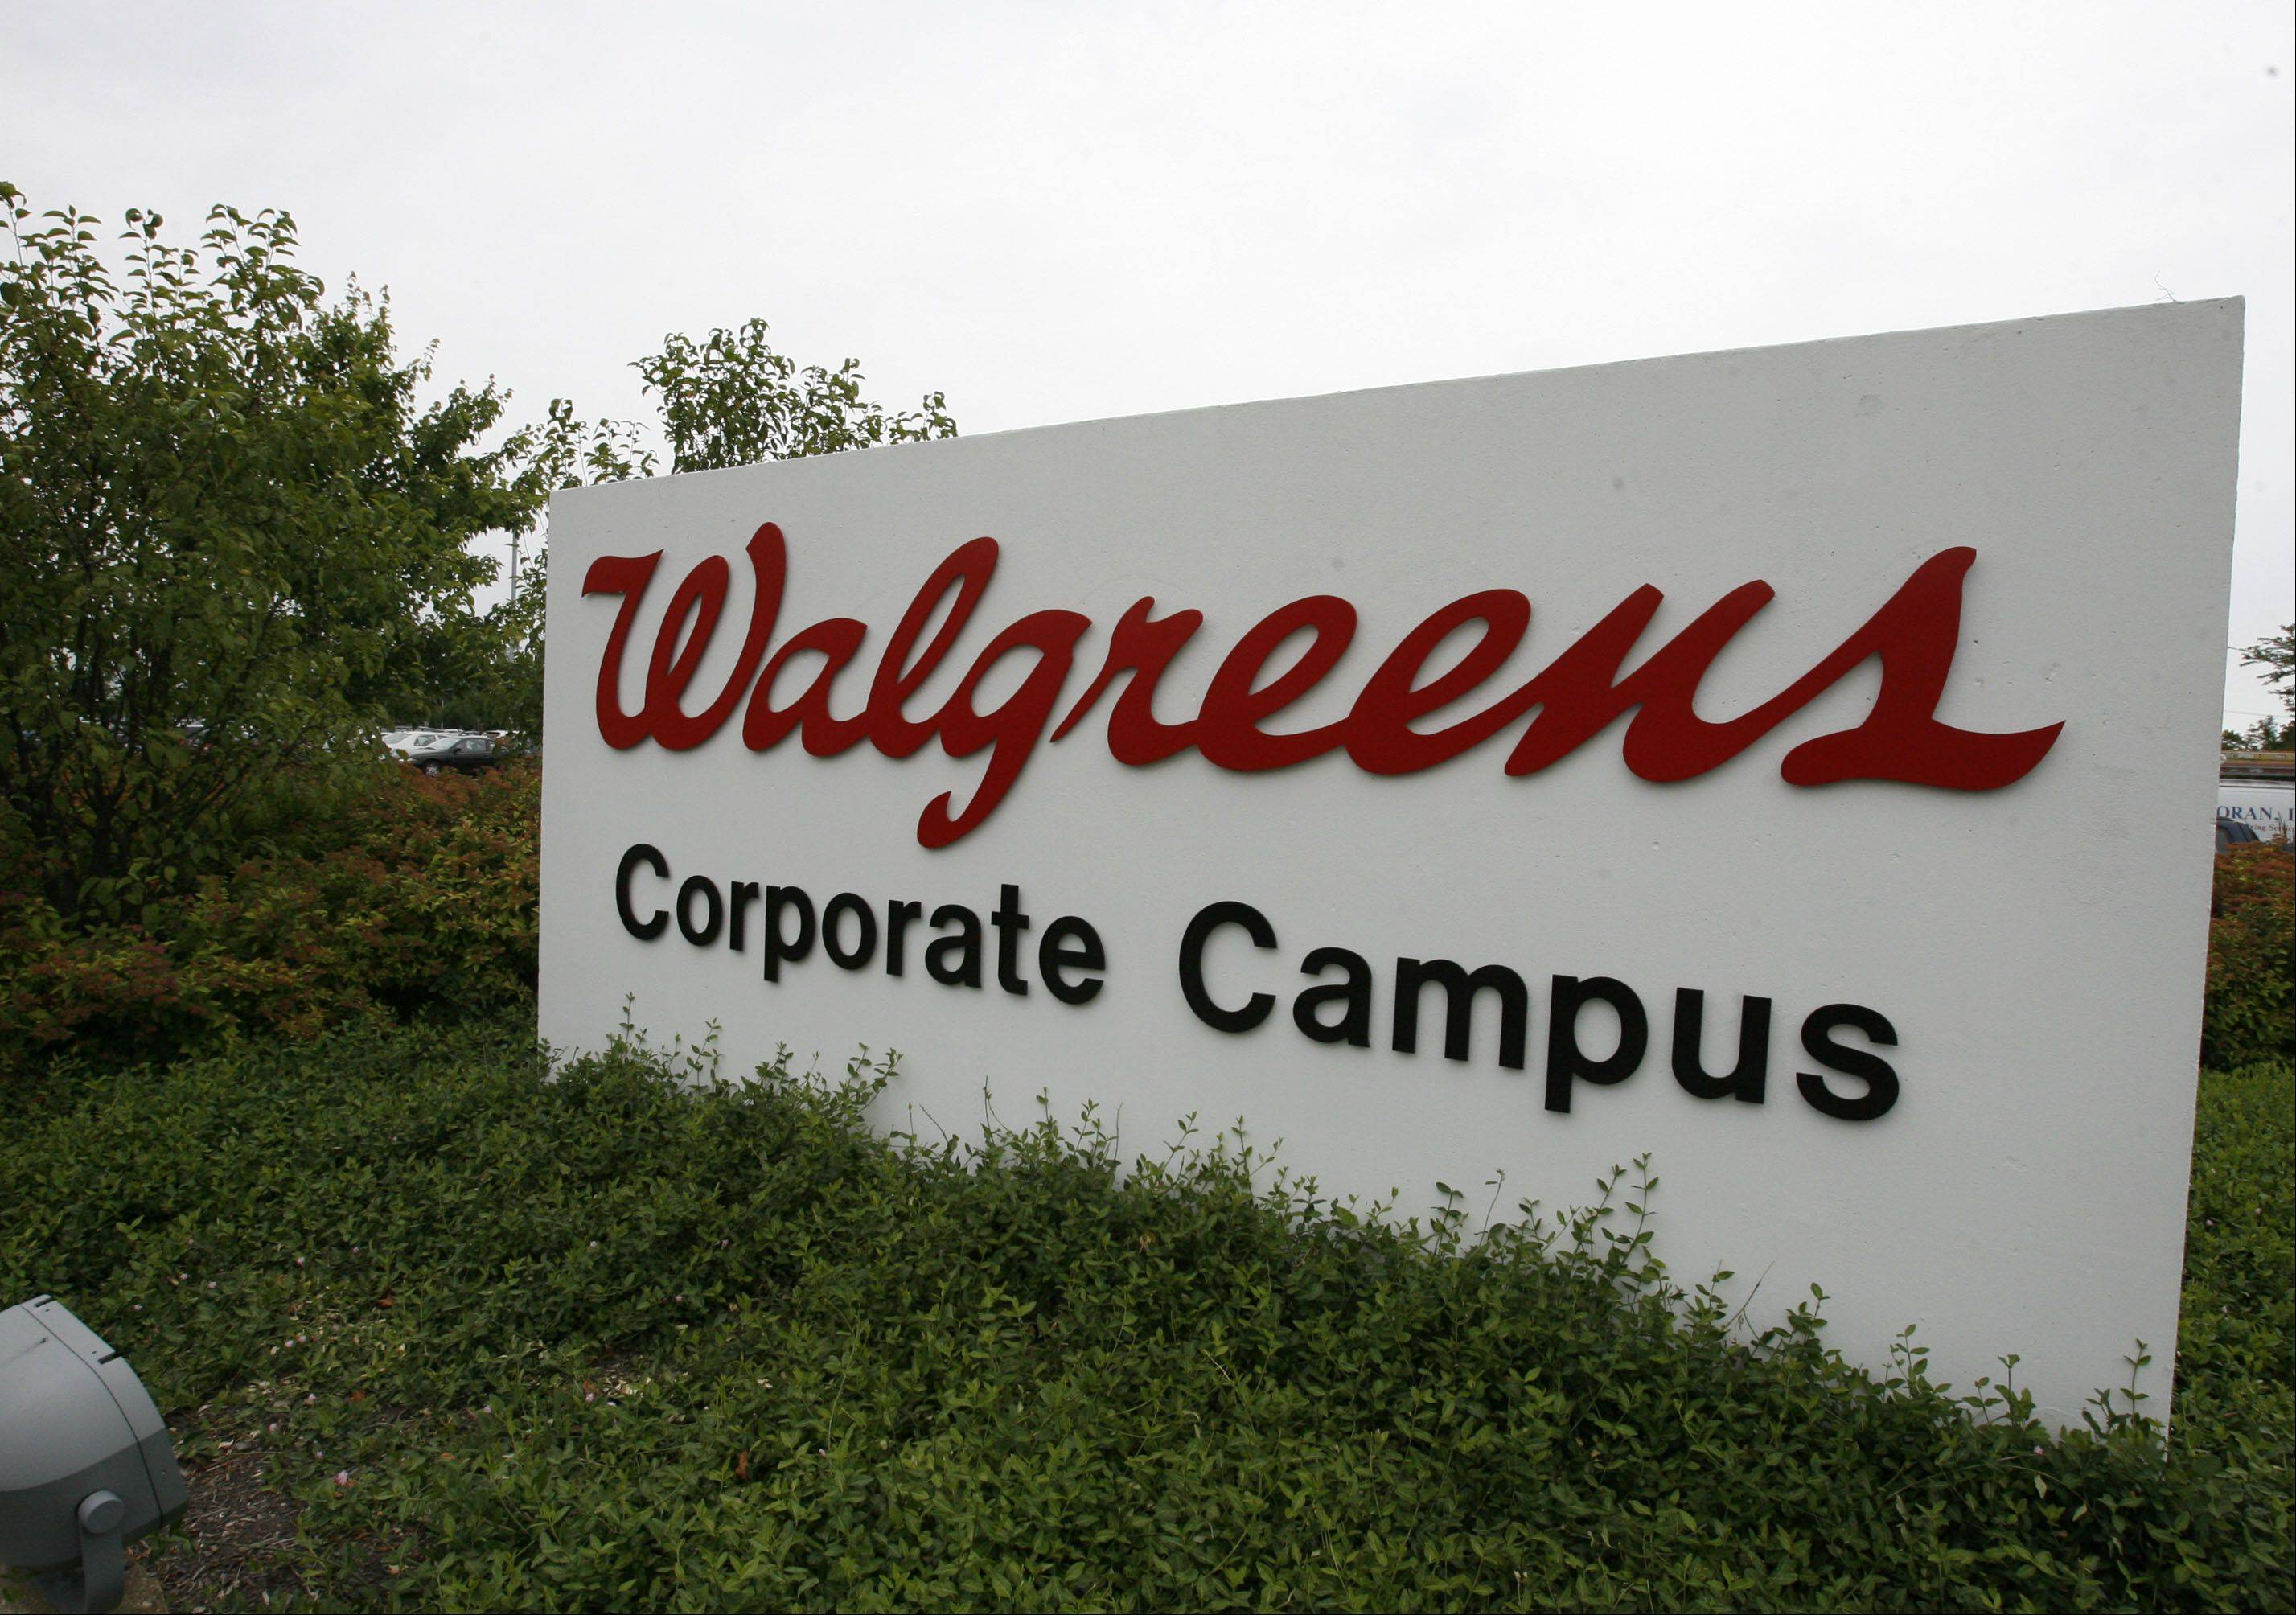 eerfield-based Walgreen Co.'s total July revenue from established stores climbed 6.3 percent compared to last year, when a business split hurt the nation's largest drugstore chain. The increase was larger than Wall Street expected.